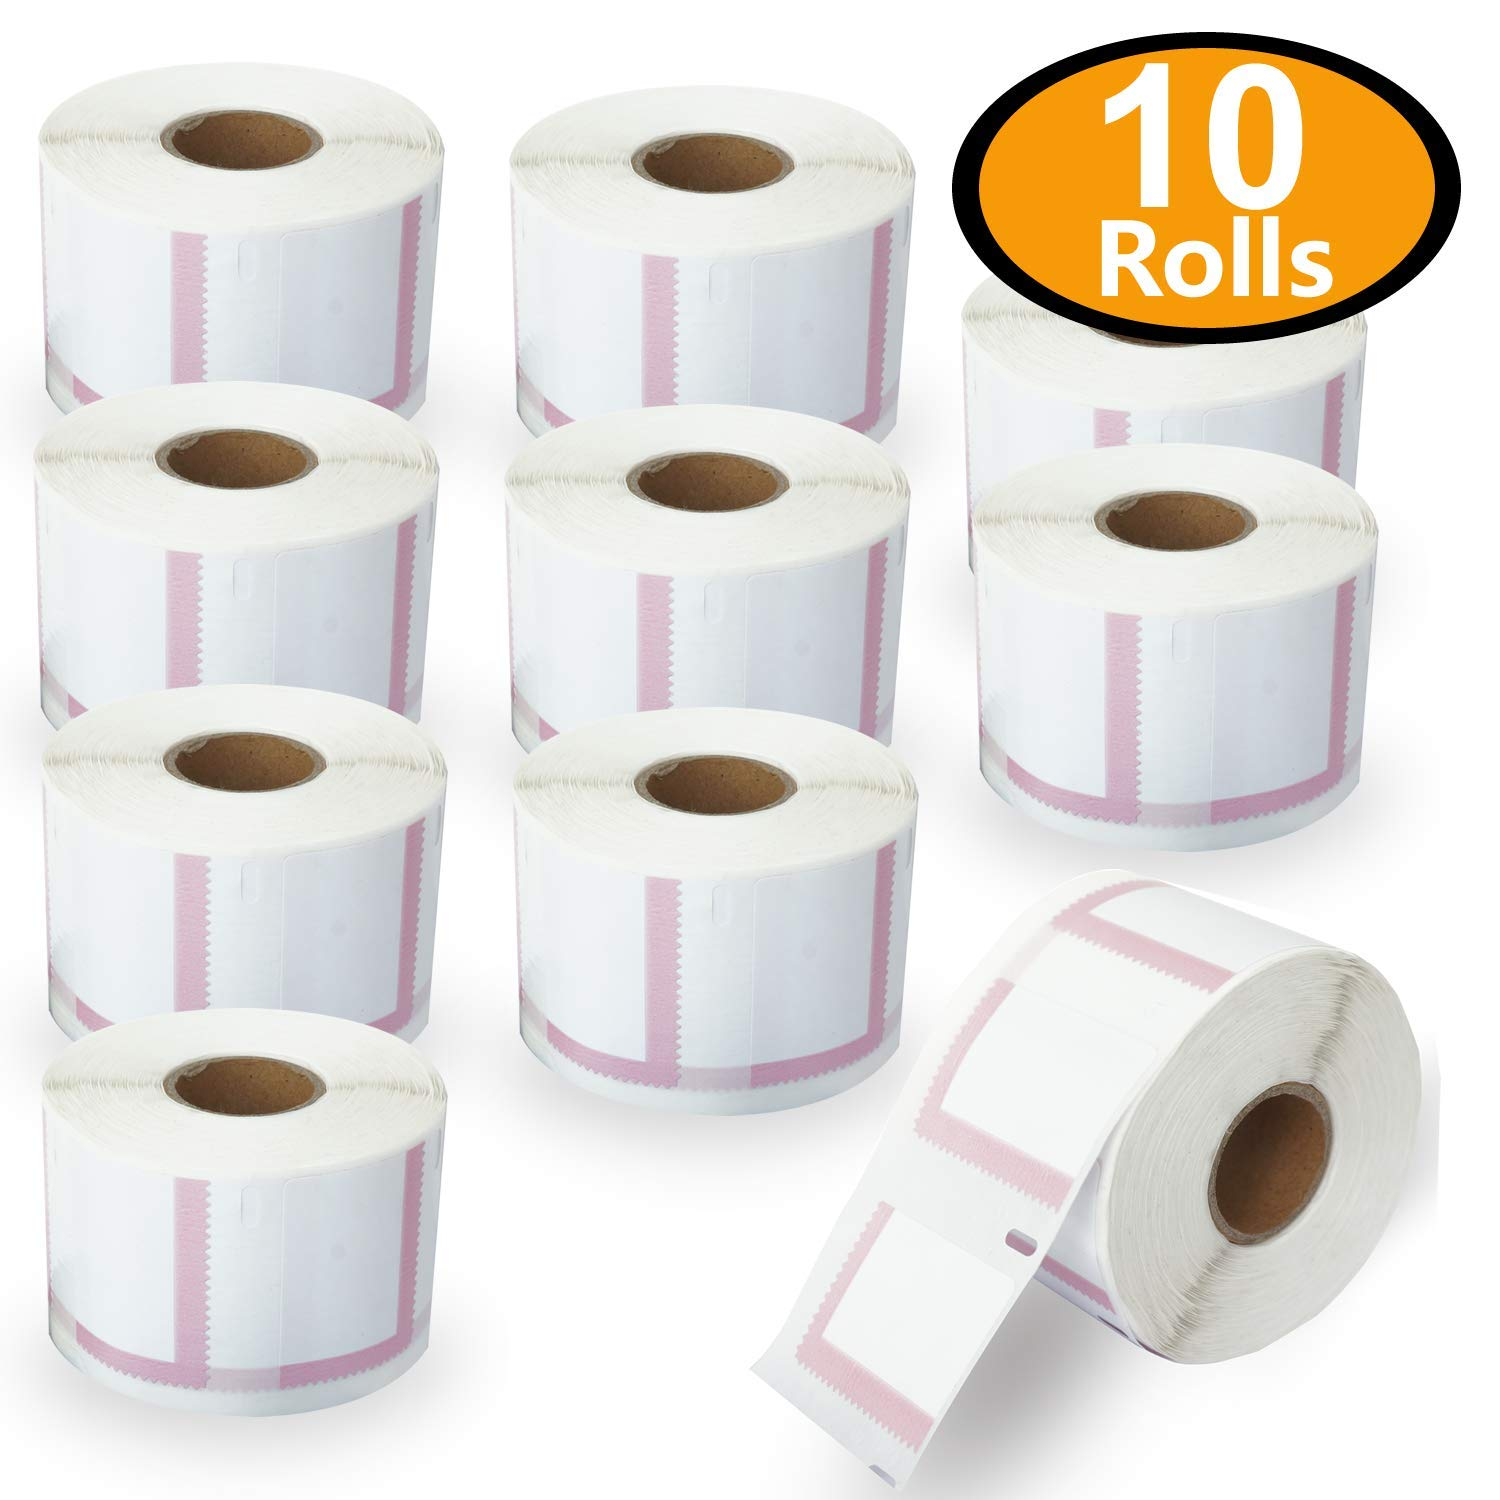 10 Rolls Dymo 30915 Compatible 1-5/8'' x 1-1/4'' Endicia Internet Postage Stamps Labels(Paid Endicia Users ONLY) by BETCKEY